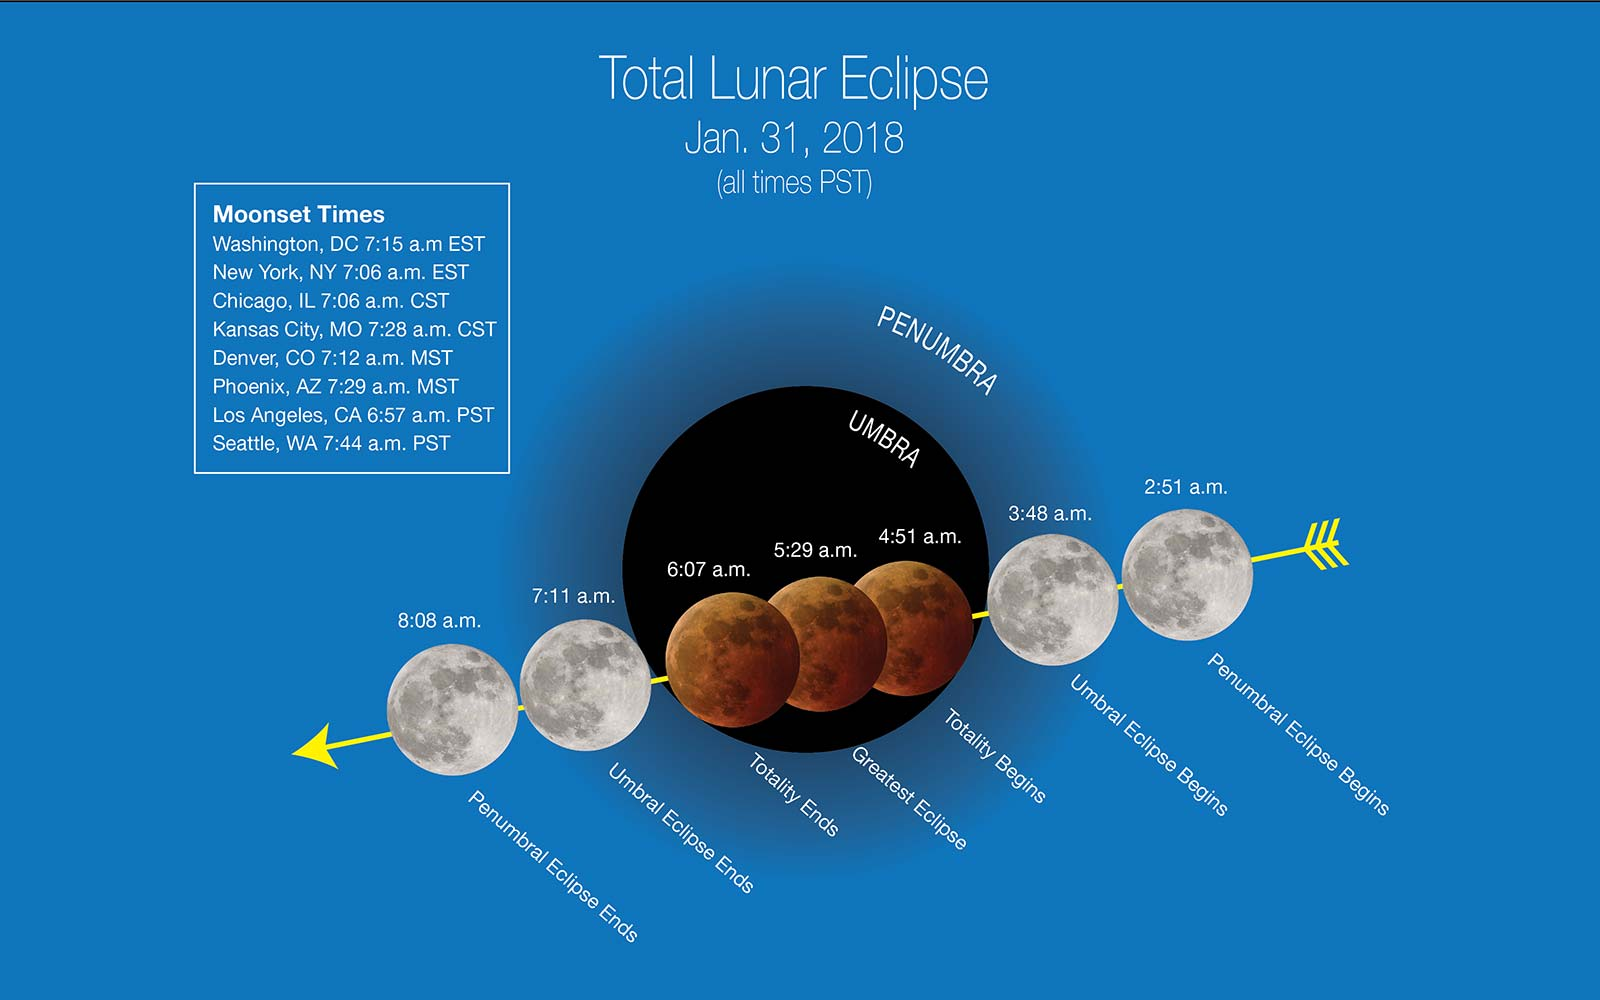 NASA Total Lunar Eclipse January 31, 2018 Viewing Times